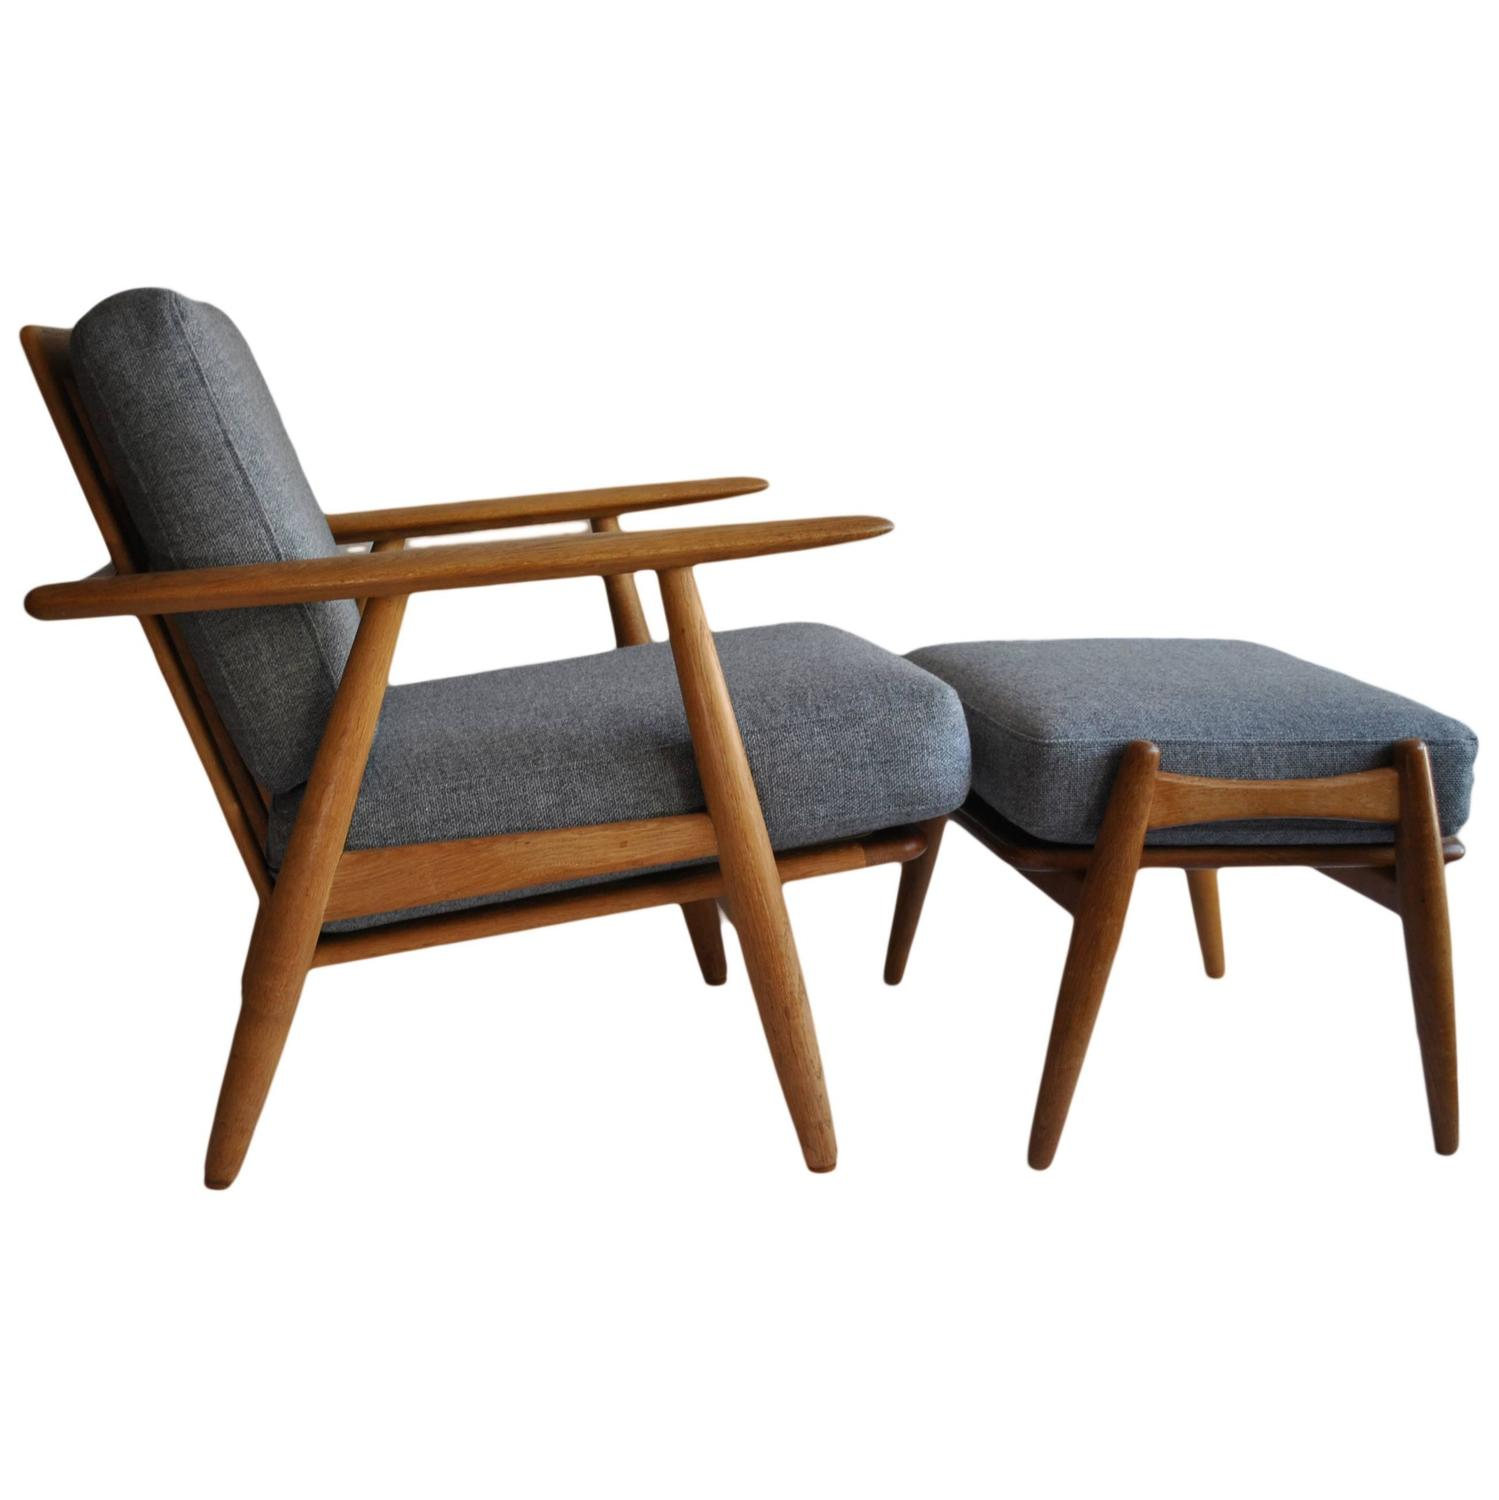 Hans J Wegner Cigar Chair with Footstool Original 1950s GETAMA at 1stdibs